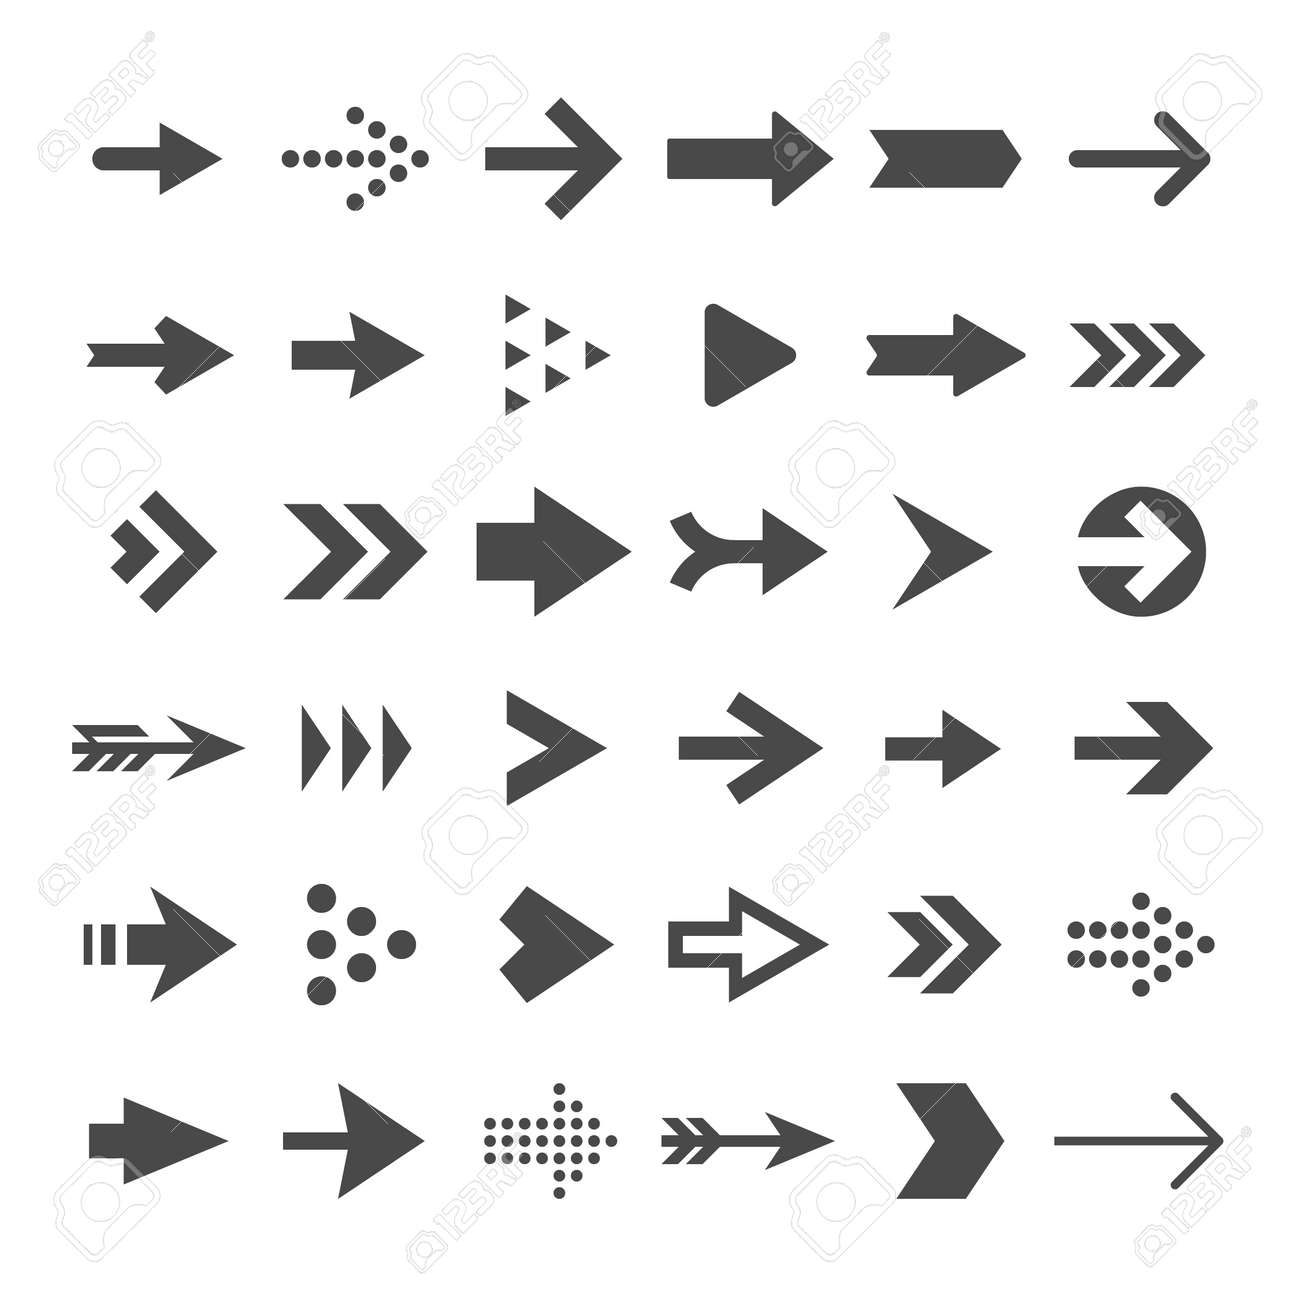 Arrow button icons. Right arrowhead signs. Rewind and next vector symbols. Set of arrow right and forward, directional and orientation pointer illustration - 167183075